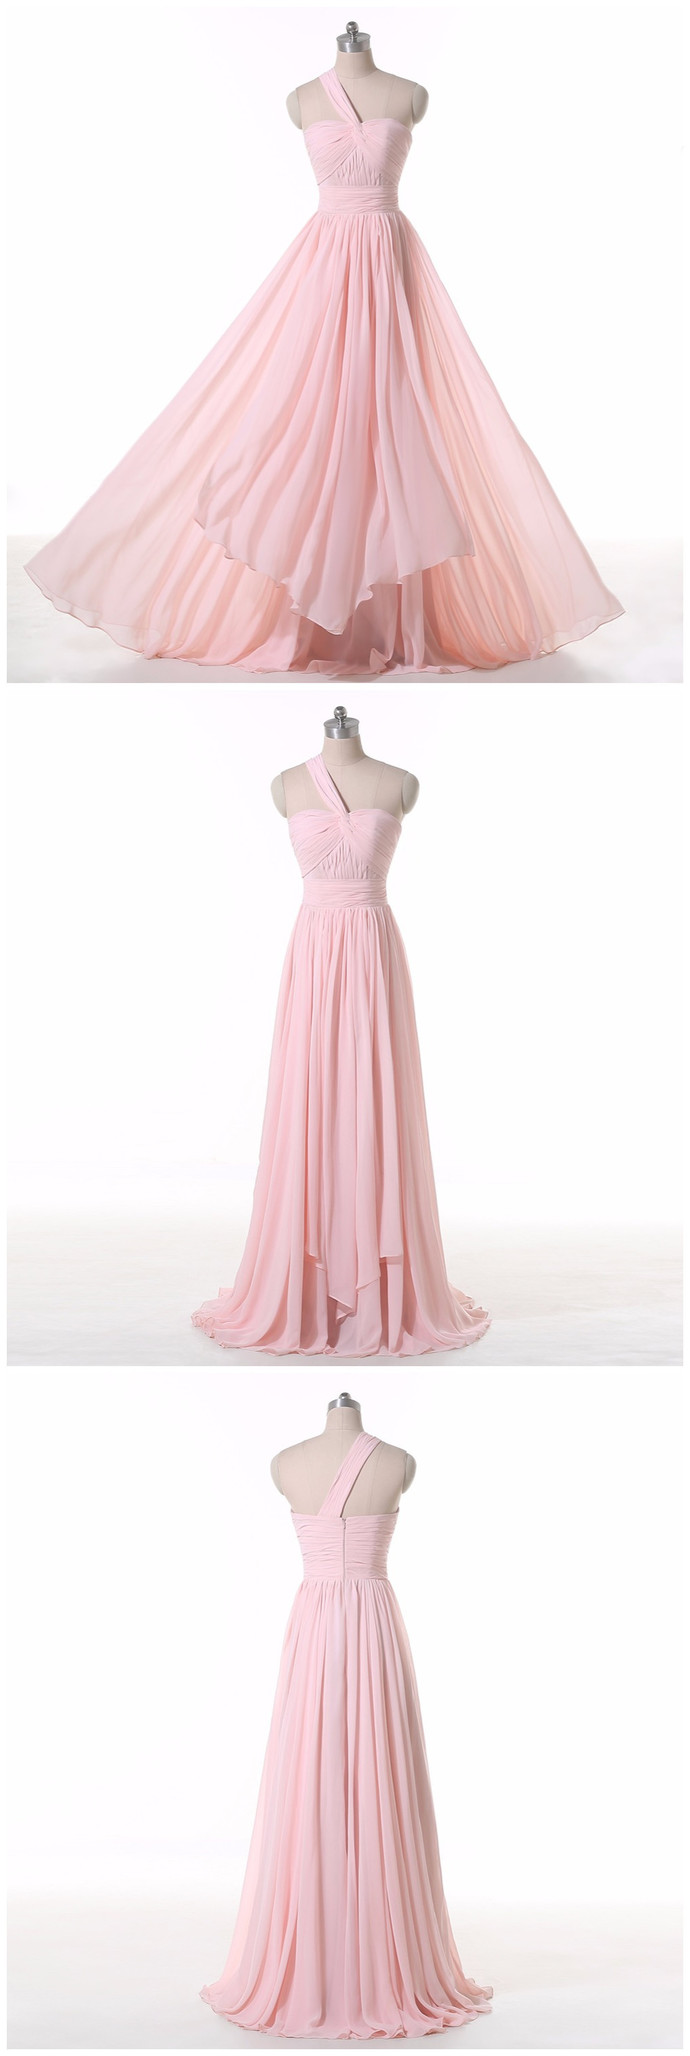 Long ball gown, mermaid evening dress